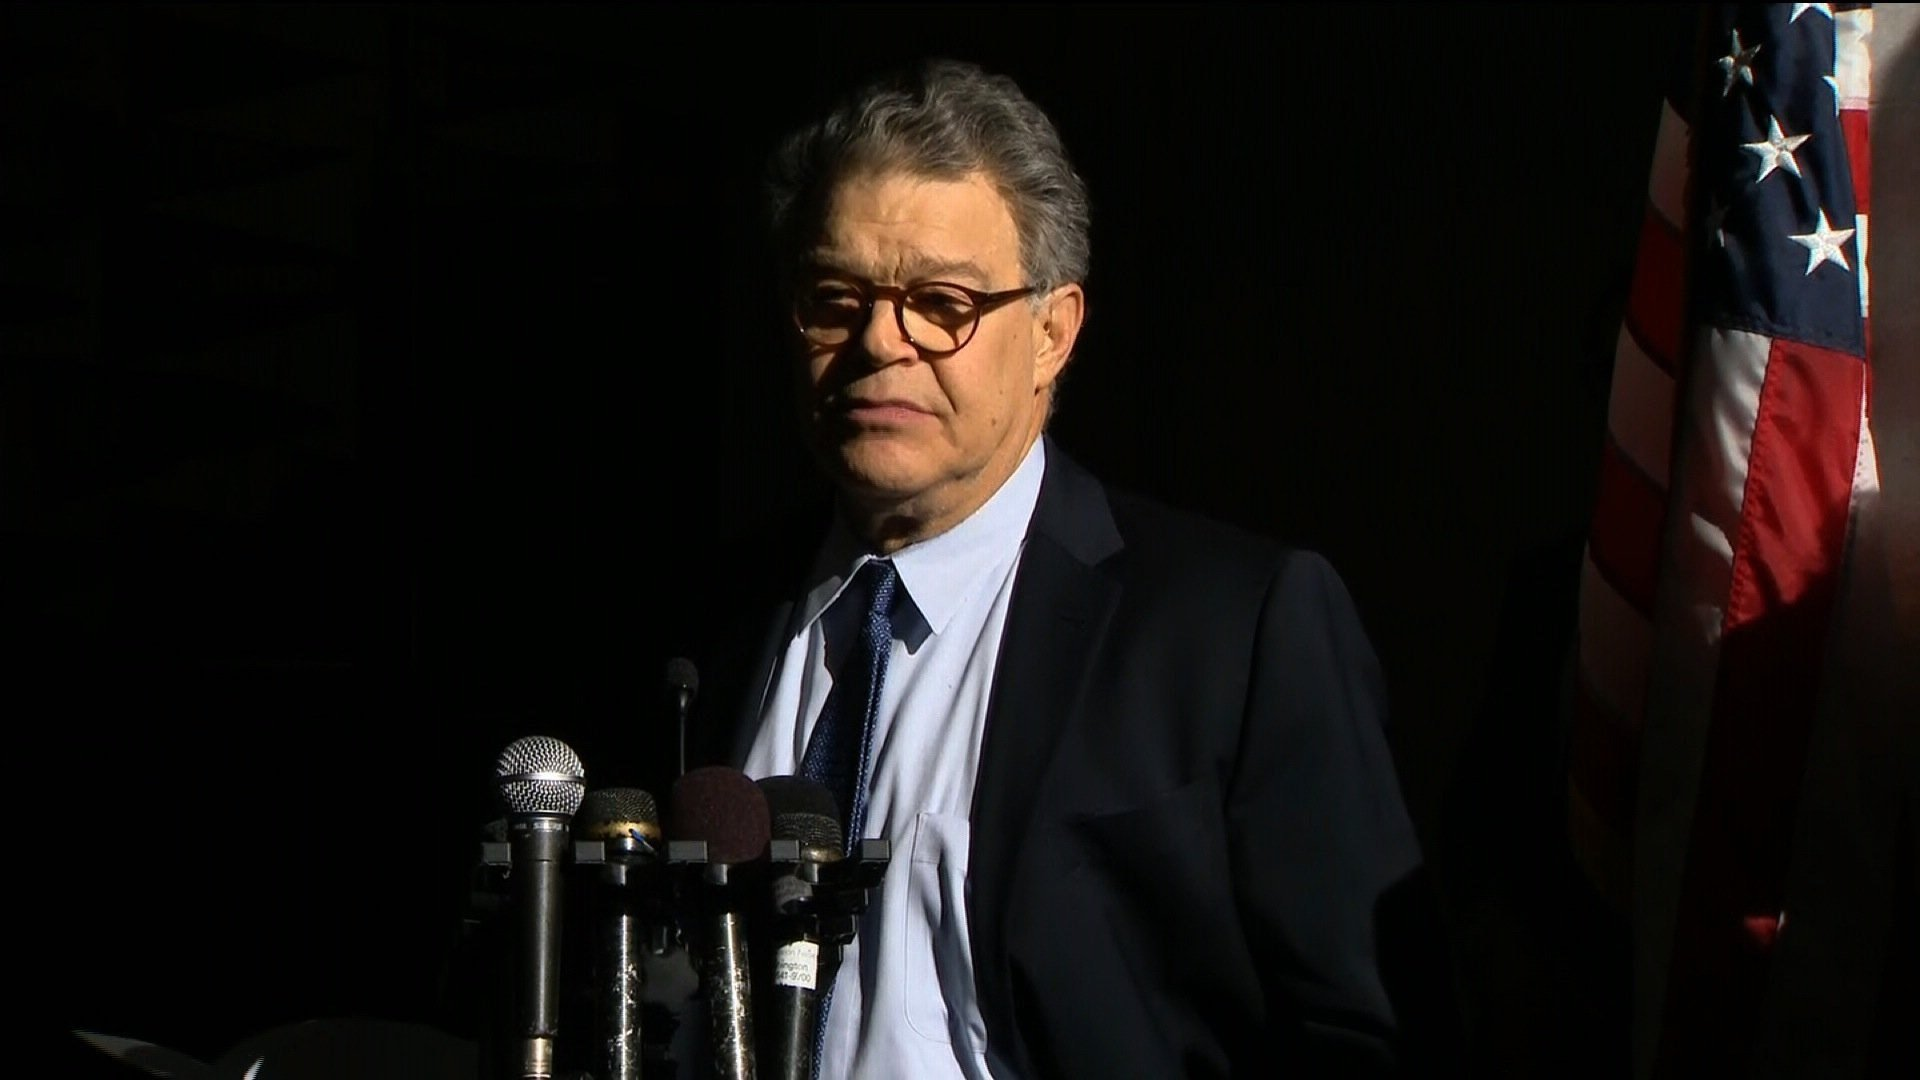 Minnesota Democratic Sen. Al Franken returned to work Monday, November 27, 2017 on Capitol Hill, telling reporters outside of his Capitol Hill office that he was sorry to everyone he let down.